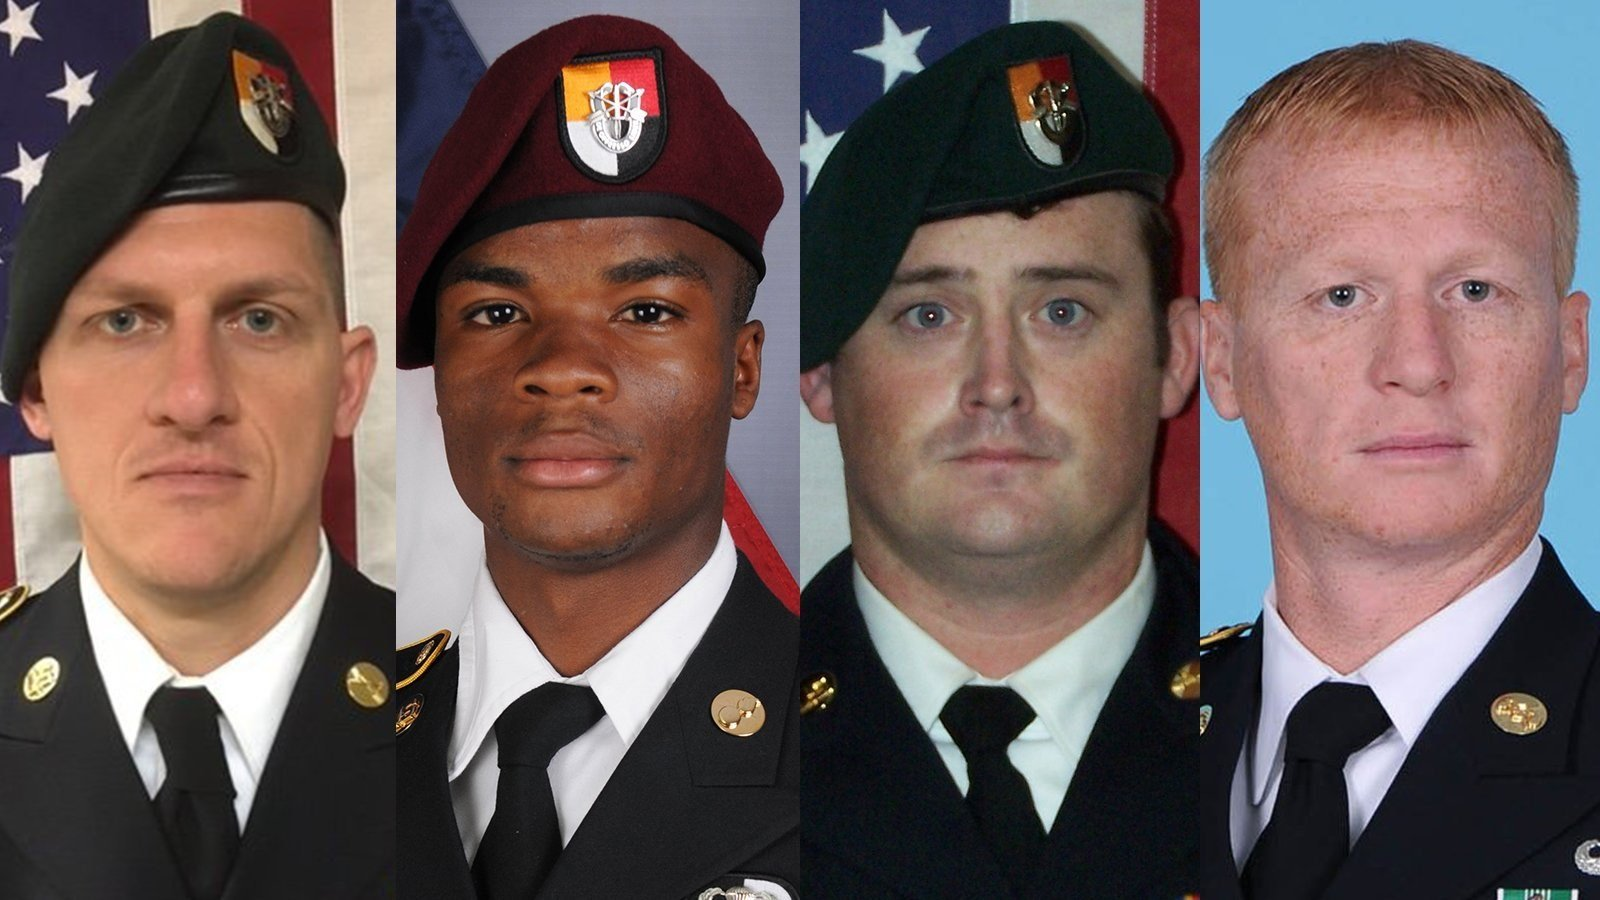 The FBI is assisting Niger authorities in the investigation of the deaths of four US servicemen, a law enforcement official tells CNN, a routine step for the bureau when US citizens are killed overseas.